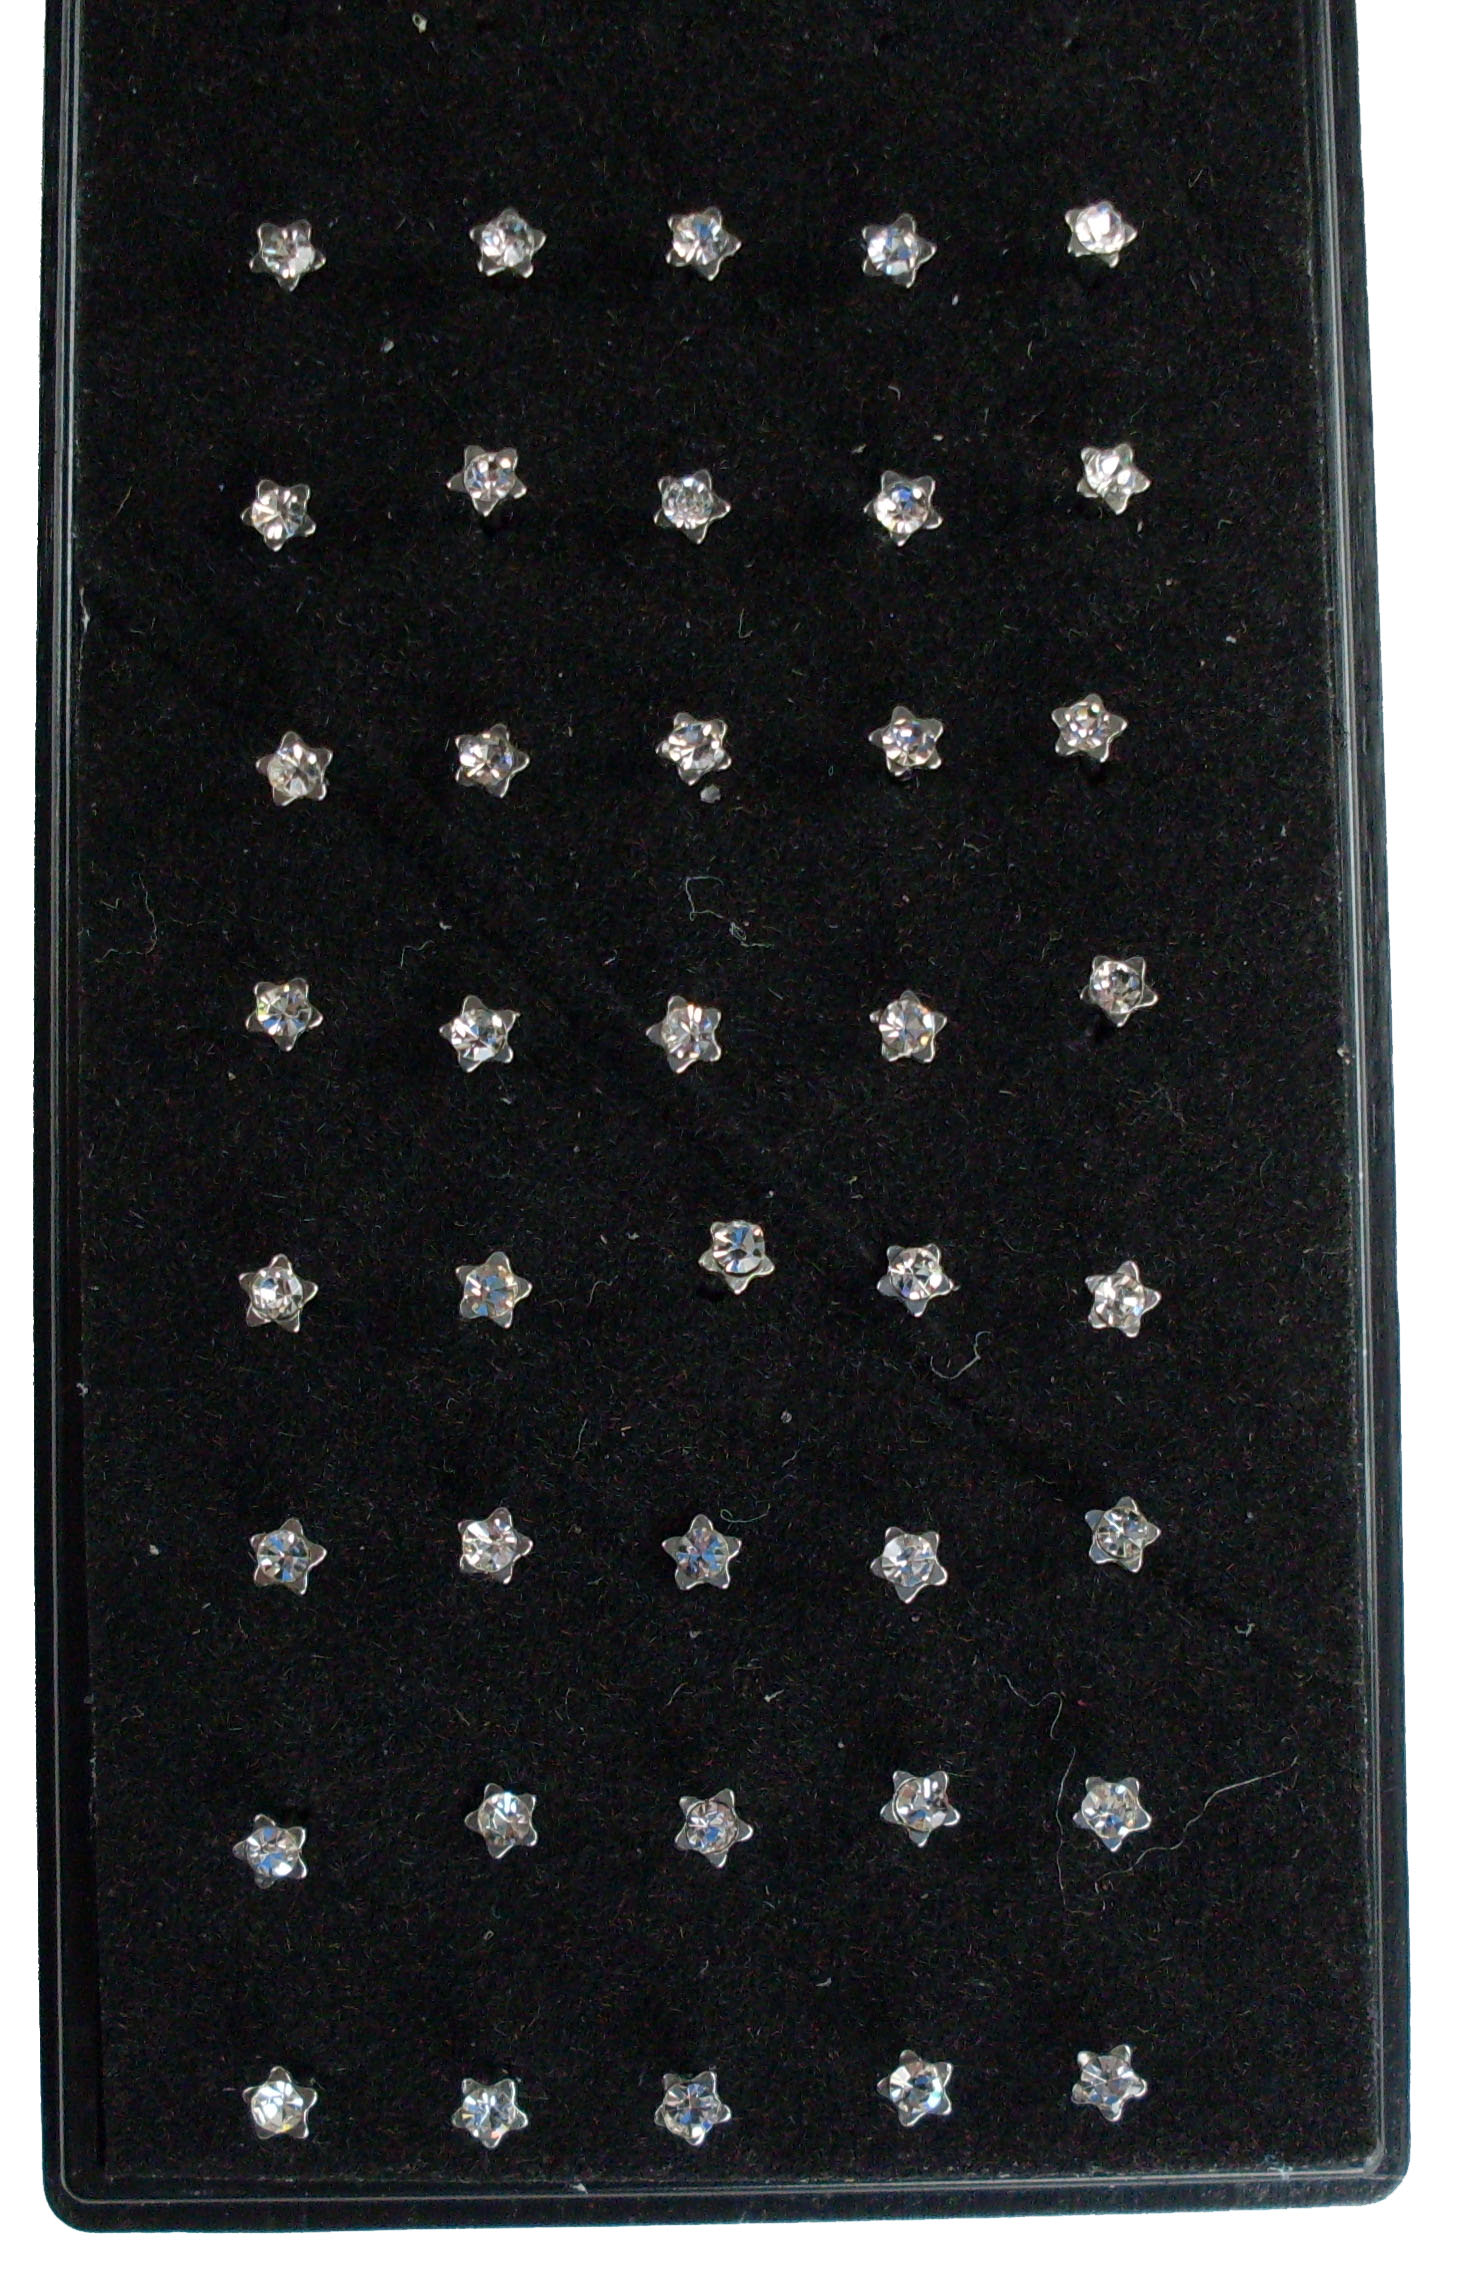 Silver Star Nose Studs